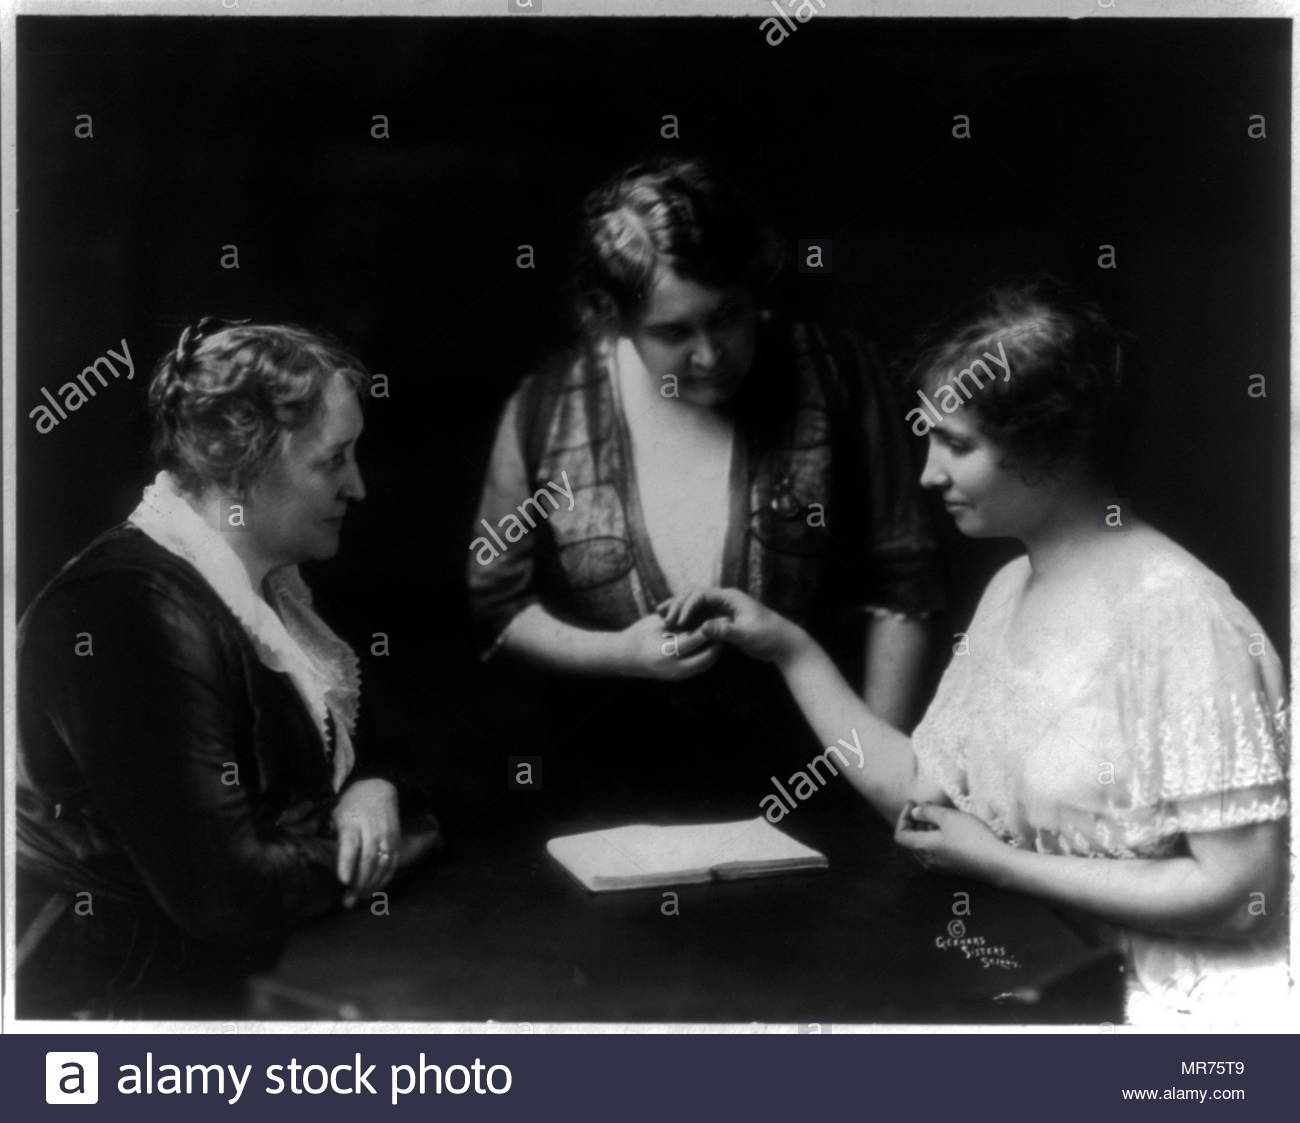 Helen Keller reading a woman's fingers as another woman watches1914  Helen Keller (1880 – 1968), American author, political activist, and lecturer. She was the first deaf-blind person to earn a bachelor of arts degree. she campaigned for women's suffrage, labour rights, socialism, antimilitarism, and other similar causes. - Stock Image